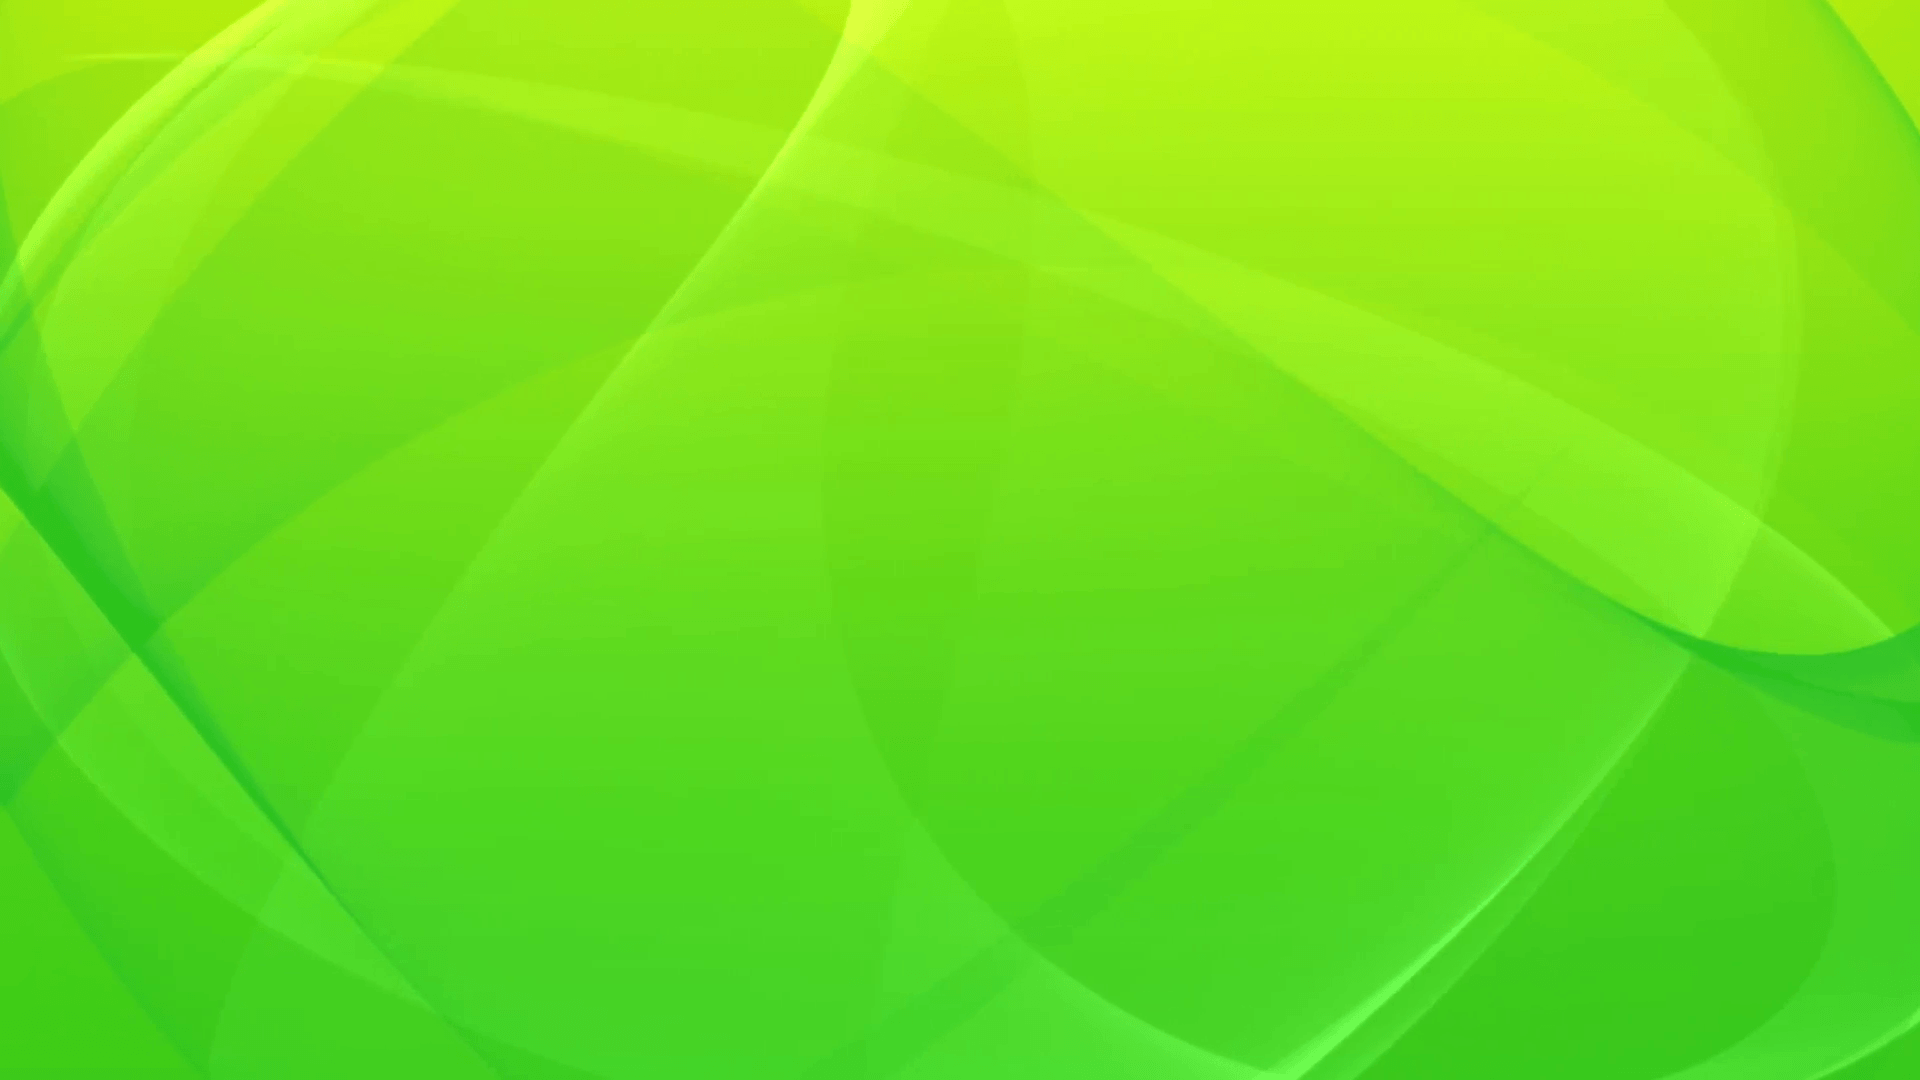 Green Backgrounds Wallpaper Cave